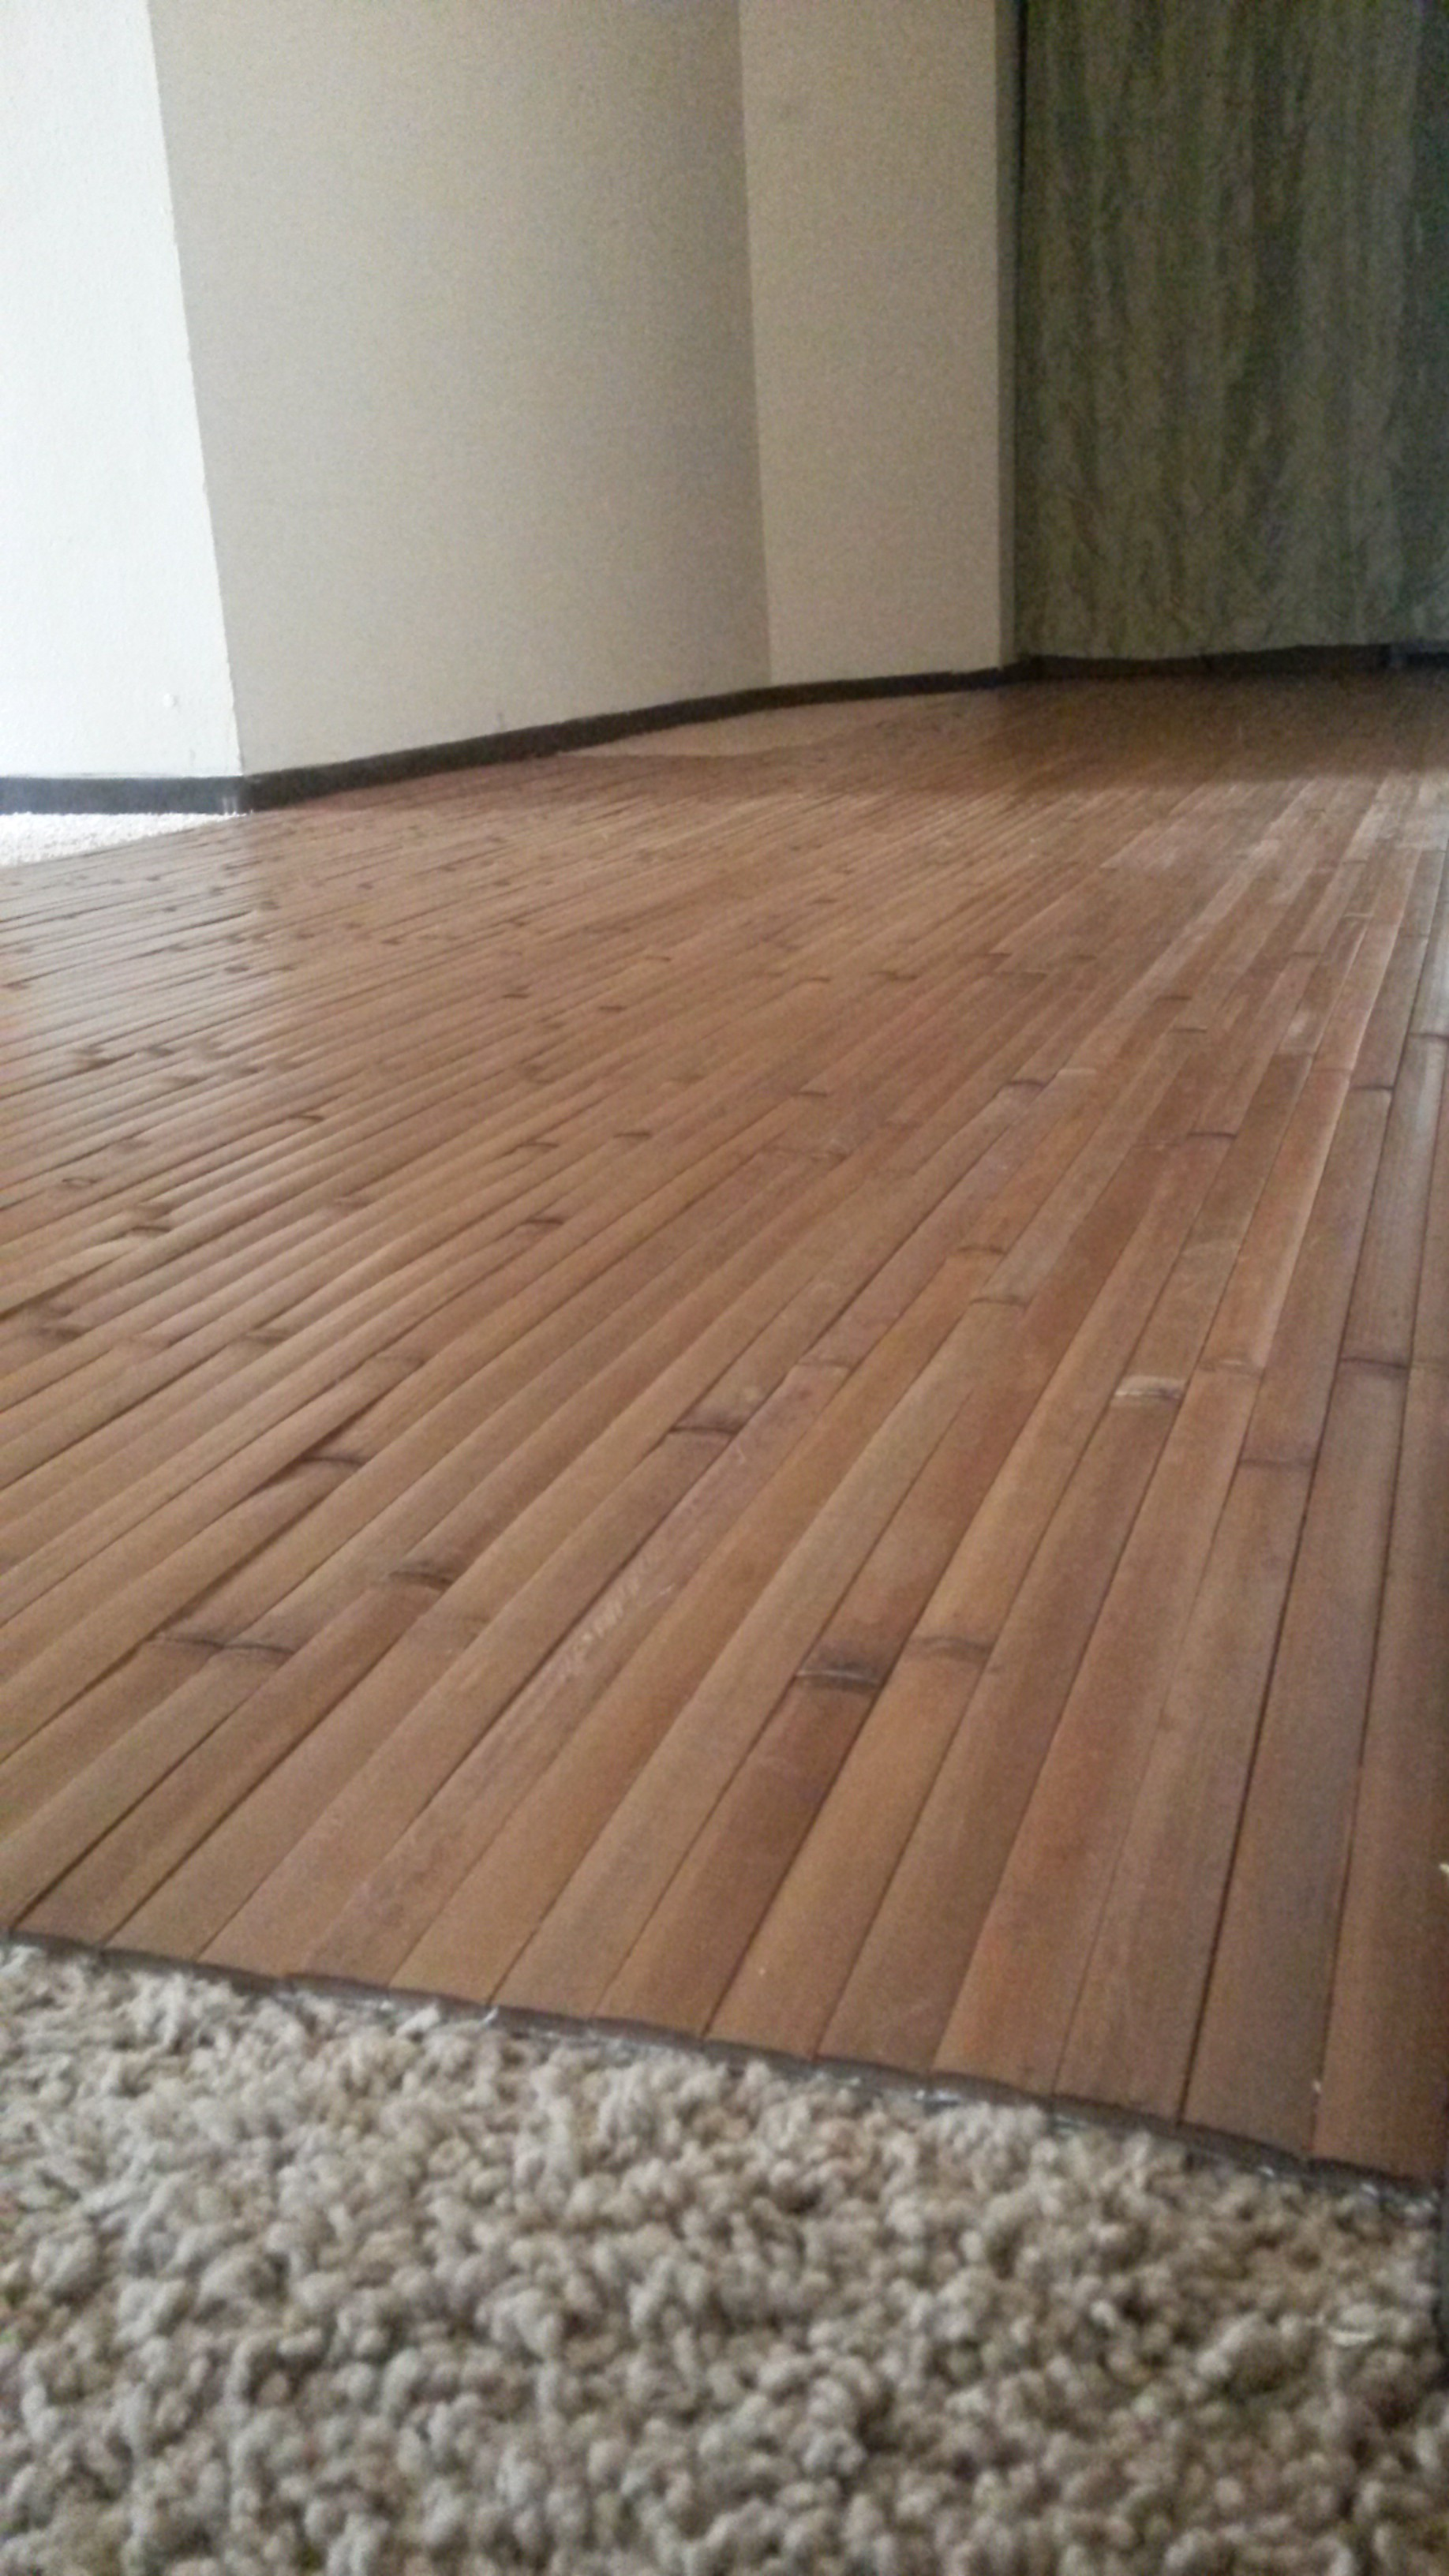 Best flooring over carpet solution ever skywaymom 8 x 4 bamboo wall panels make great flooring over carpet dailygadgetfo Choice Image